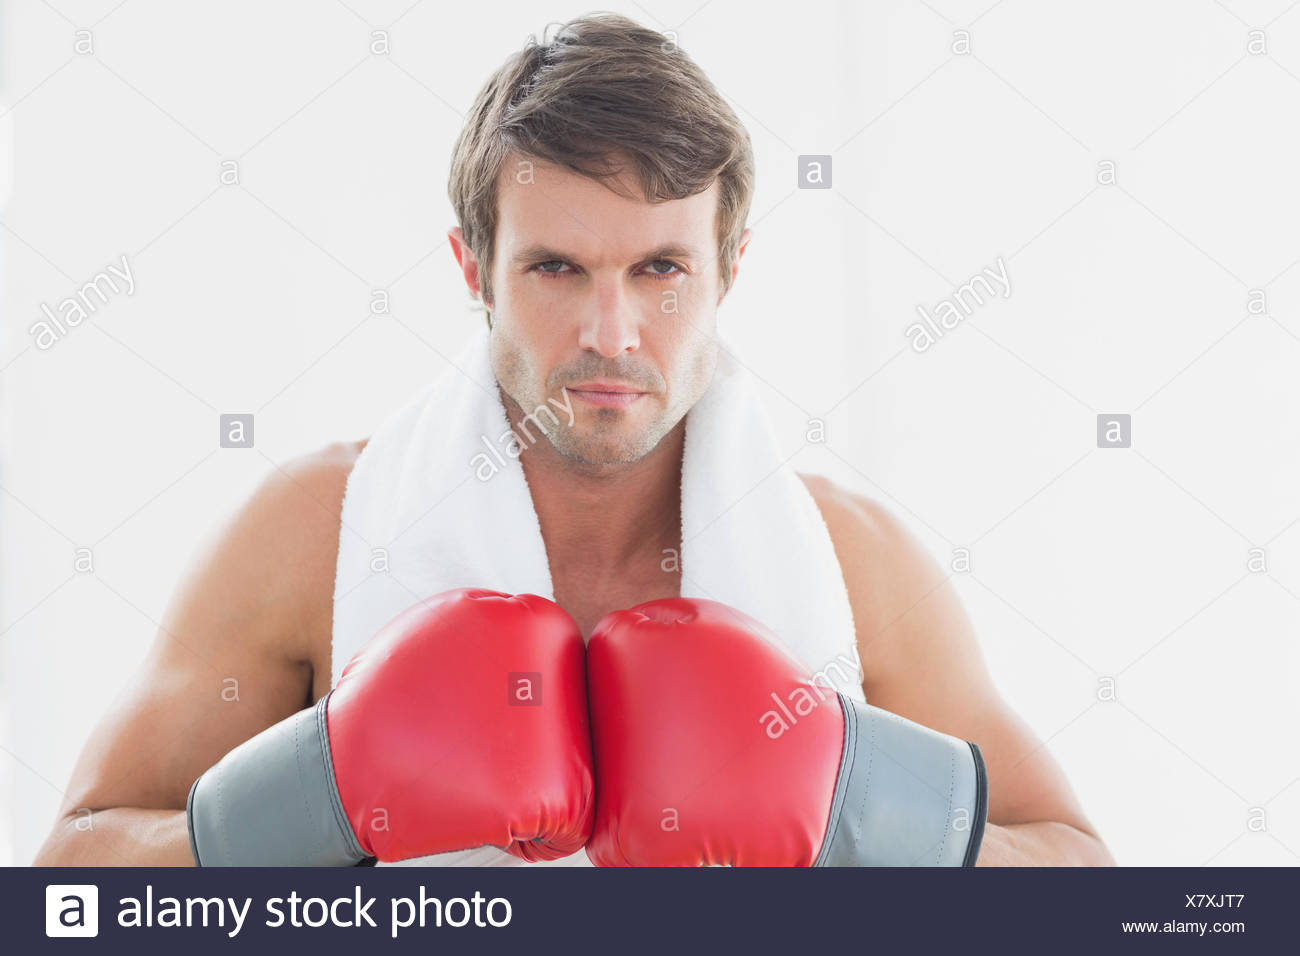 Mid Adult Man Boxing Stock Photos   Mid Adult Man Boxing Stock ... fed2237d54